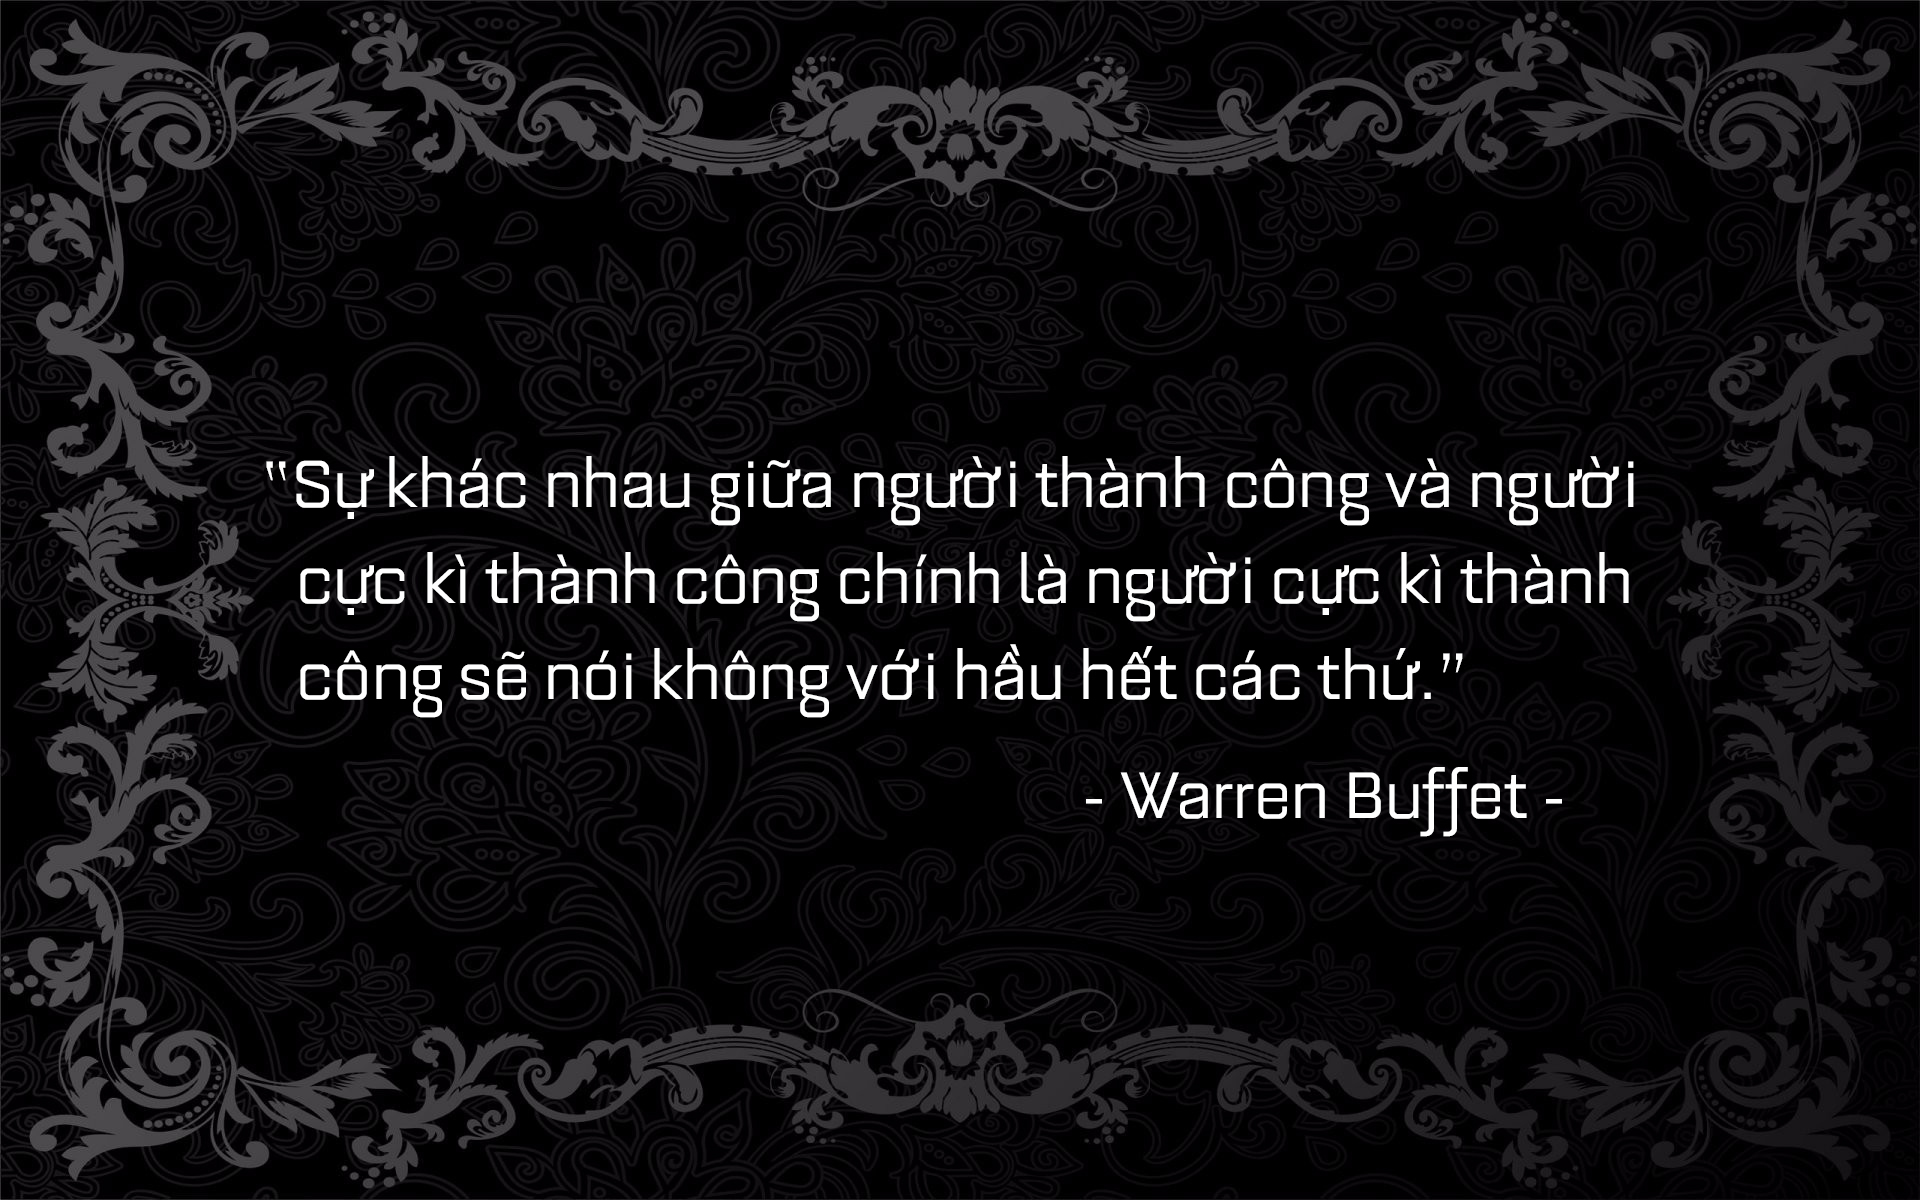 buffet quote 4.